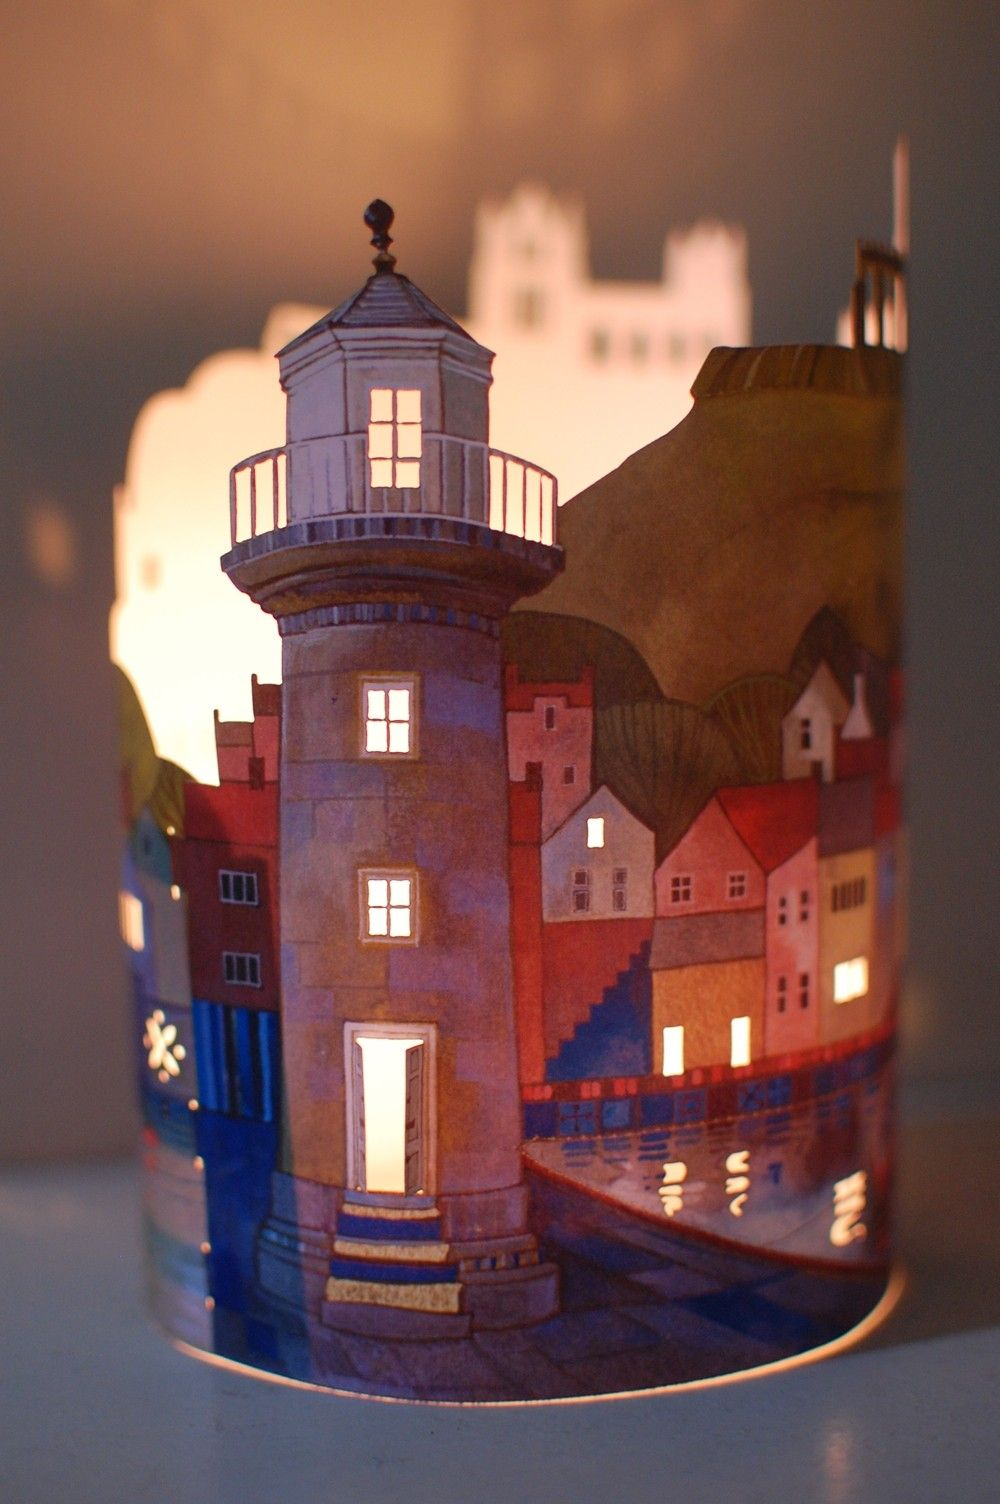 Whitby Lantern by Kate Lycett - Radiance